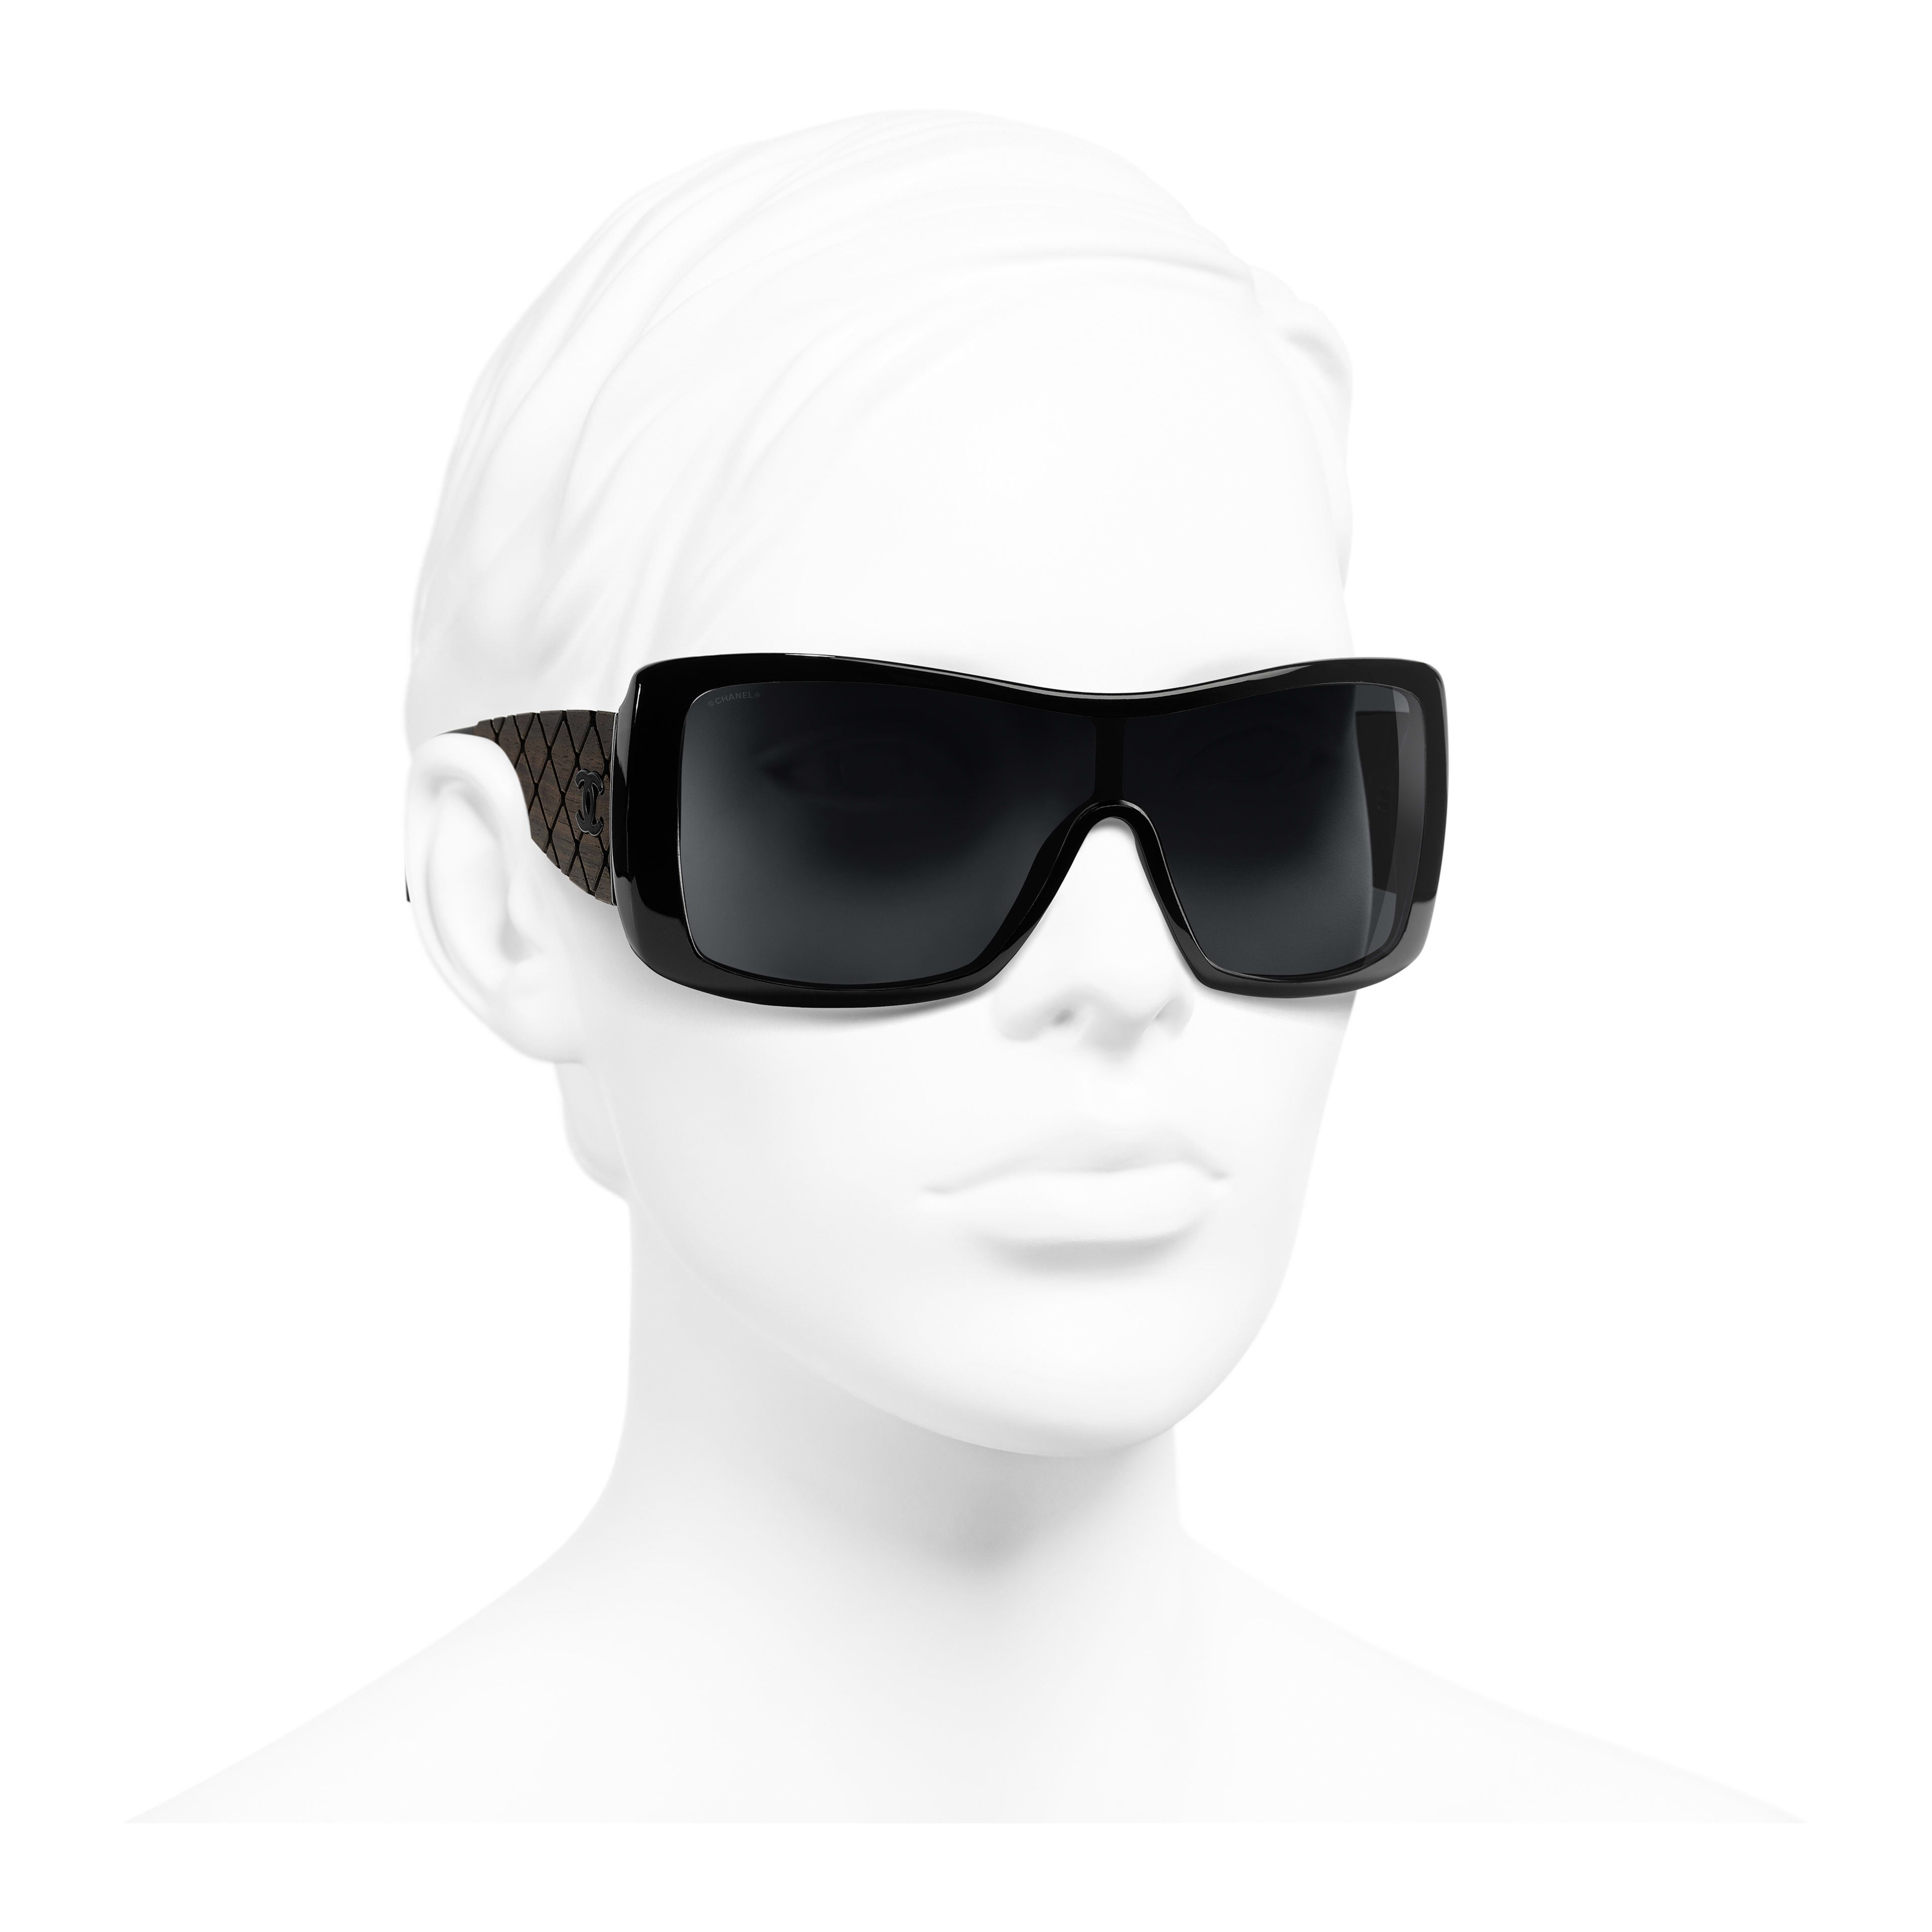 Shield Sunglasses - Black - Acetate, Wood & Rubber - Worn 3/4 view - see full sized version